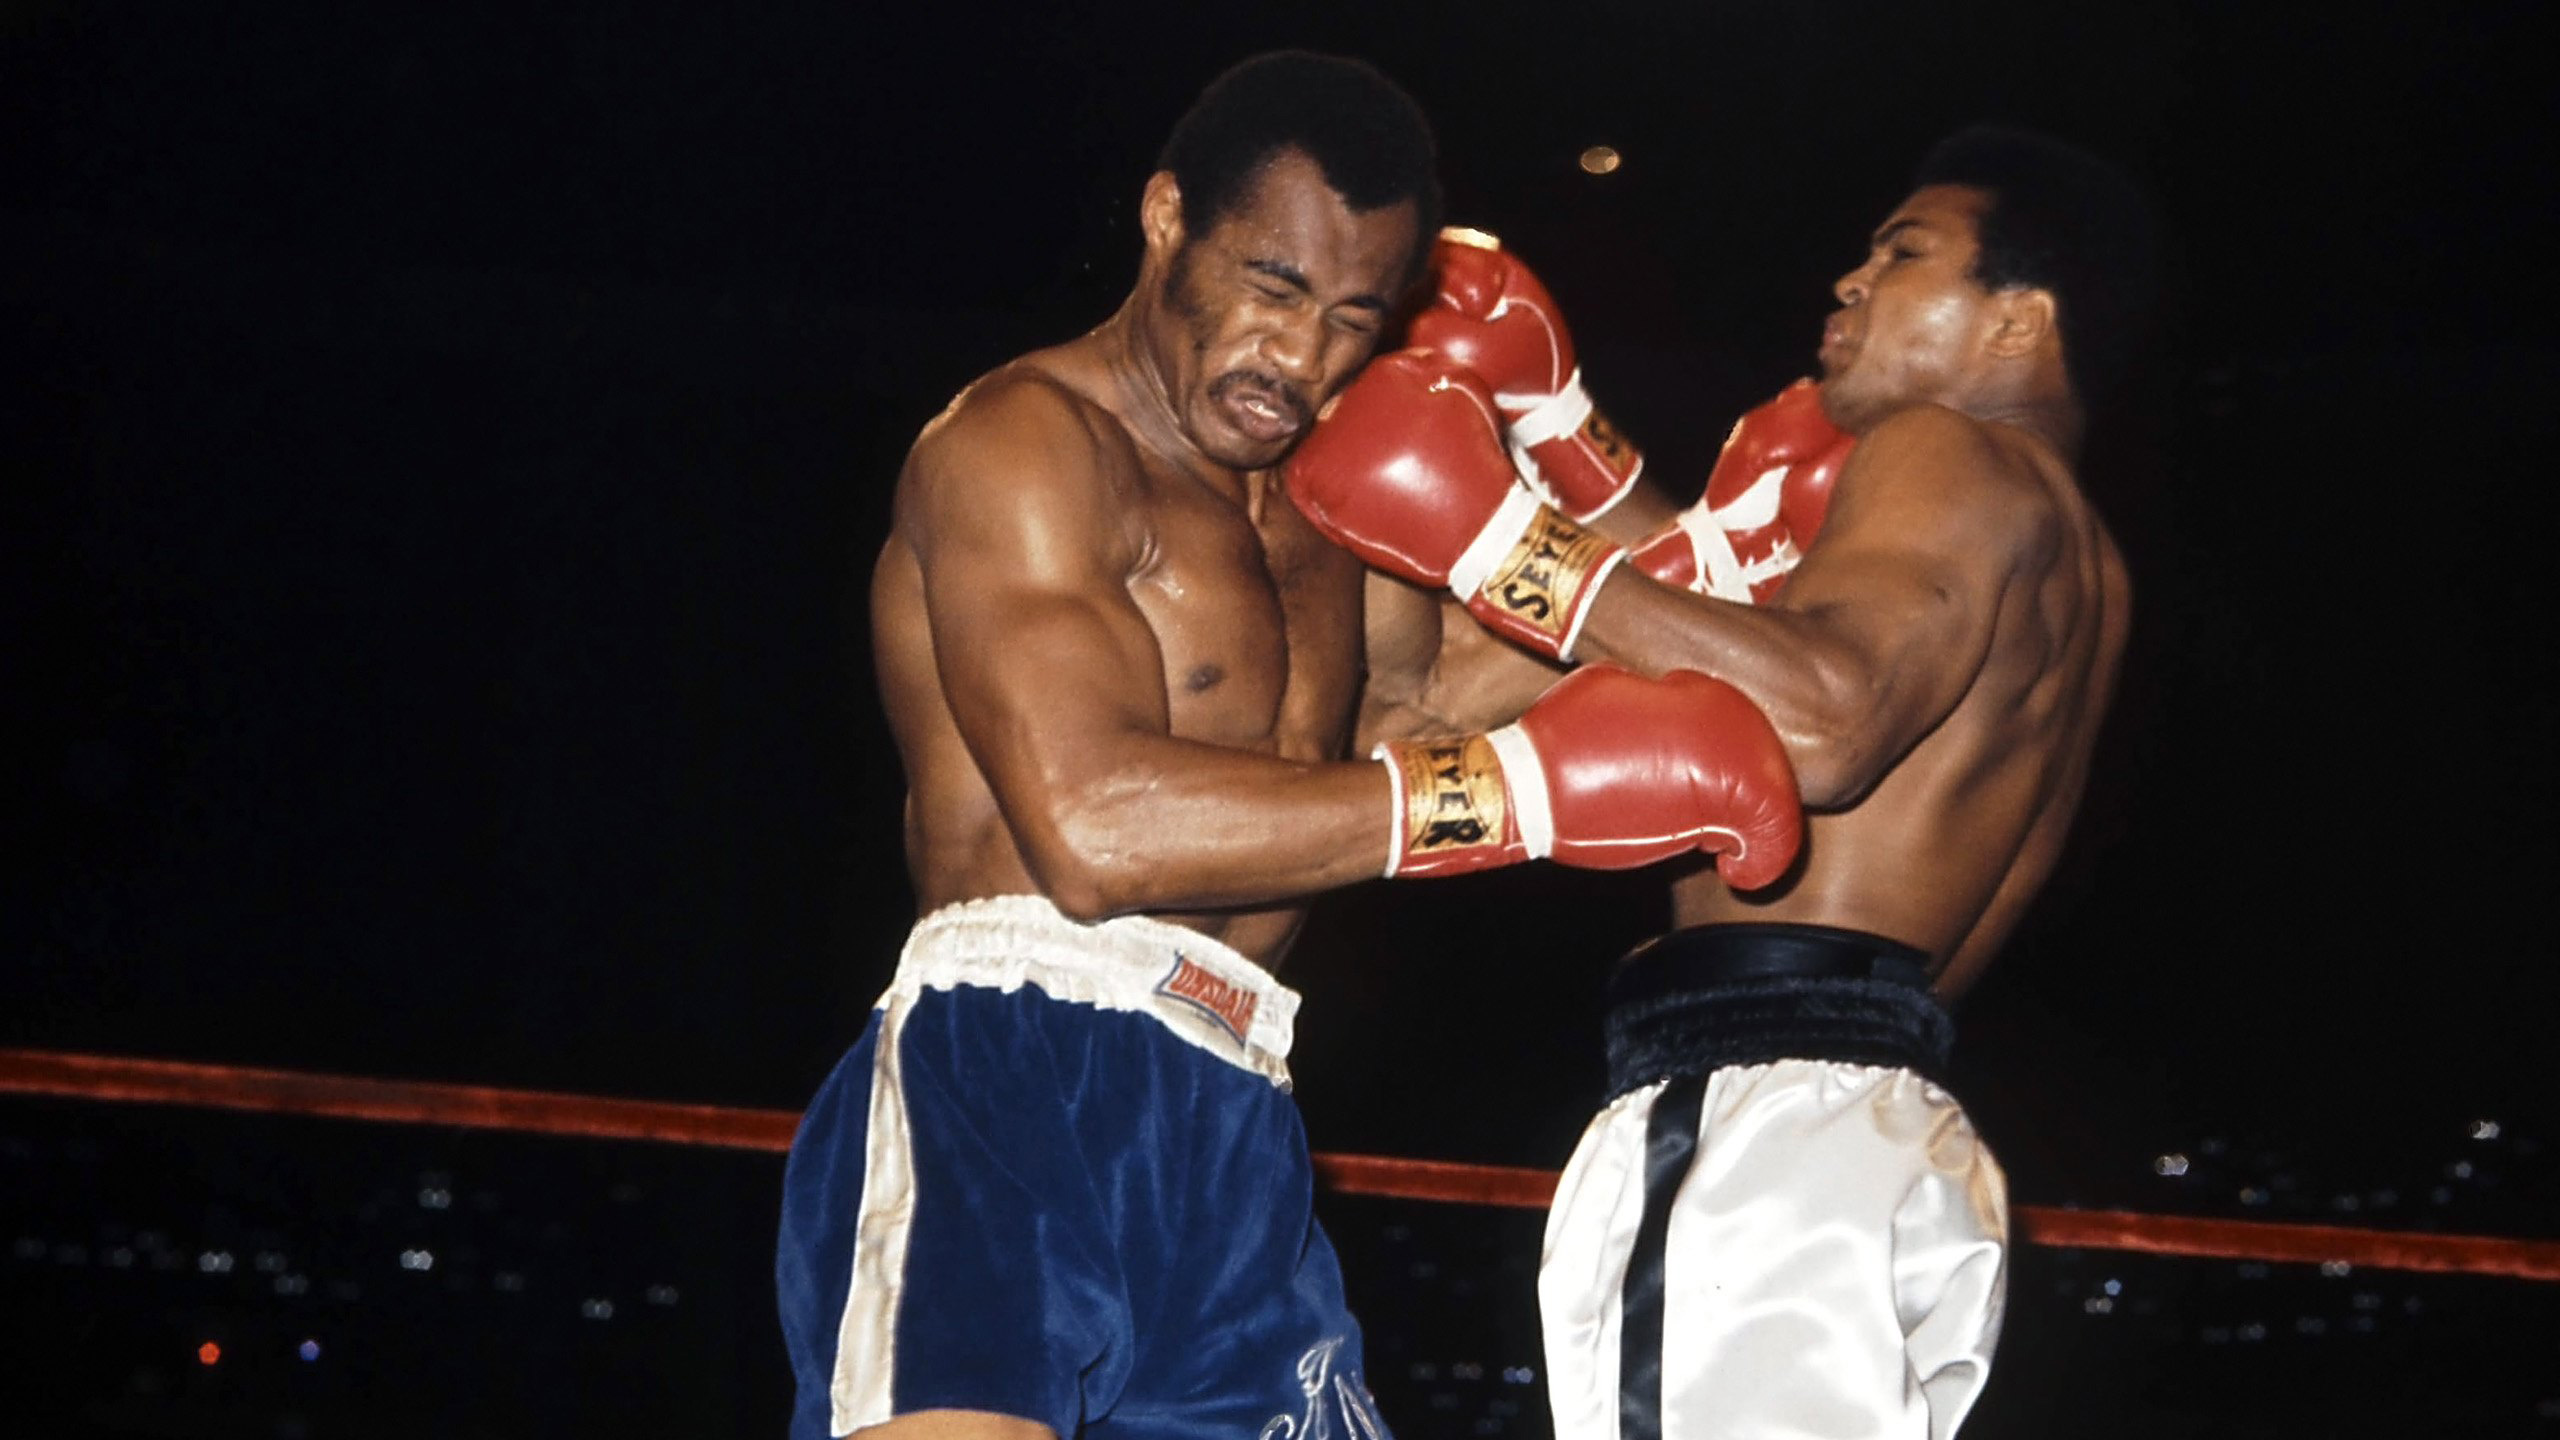 Muhammad Ali 2 vs. Ken Norton 2 (re-air)